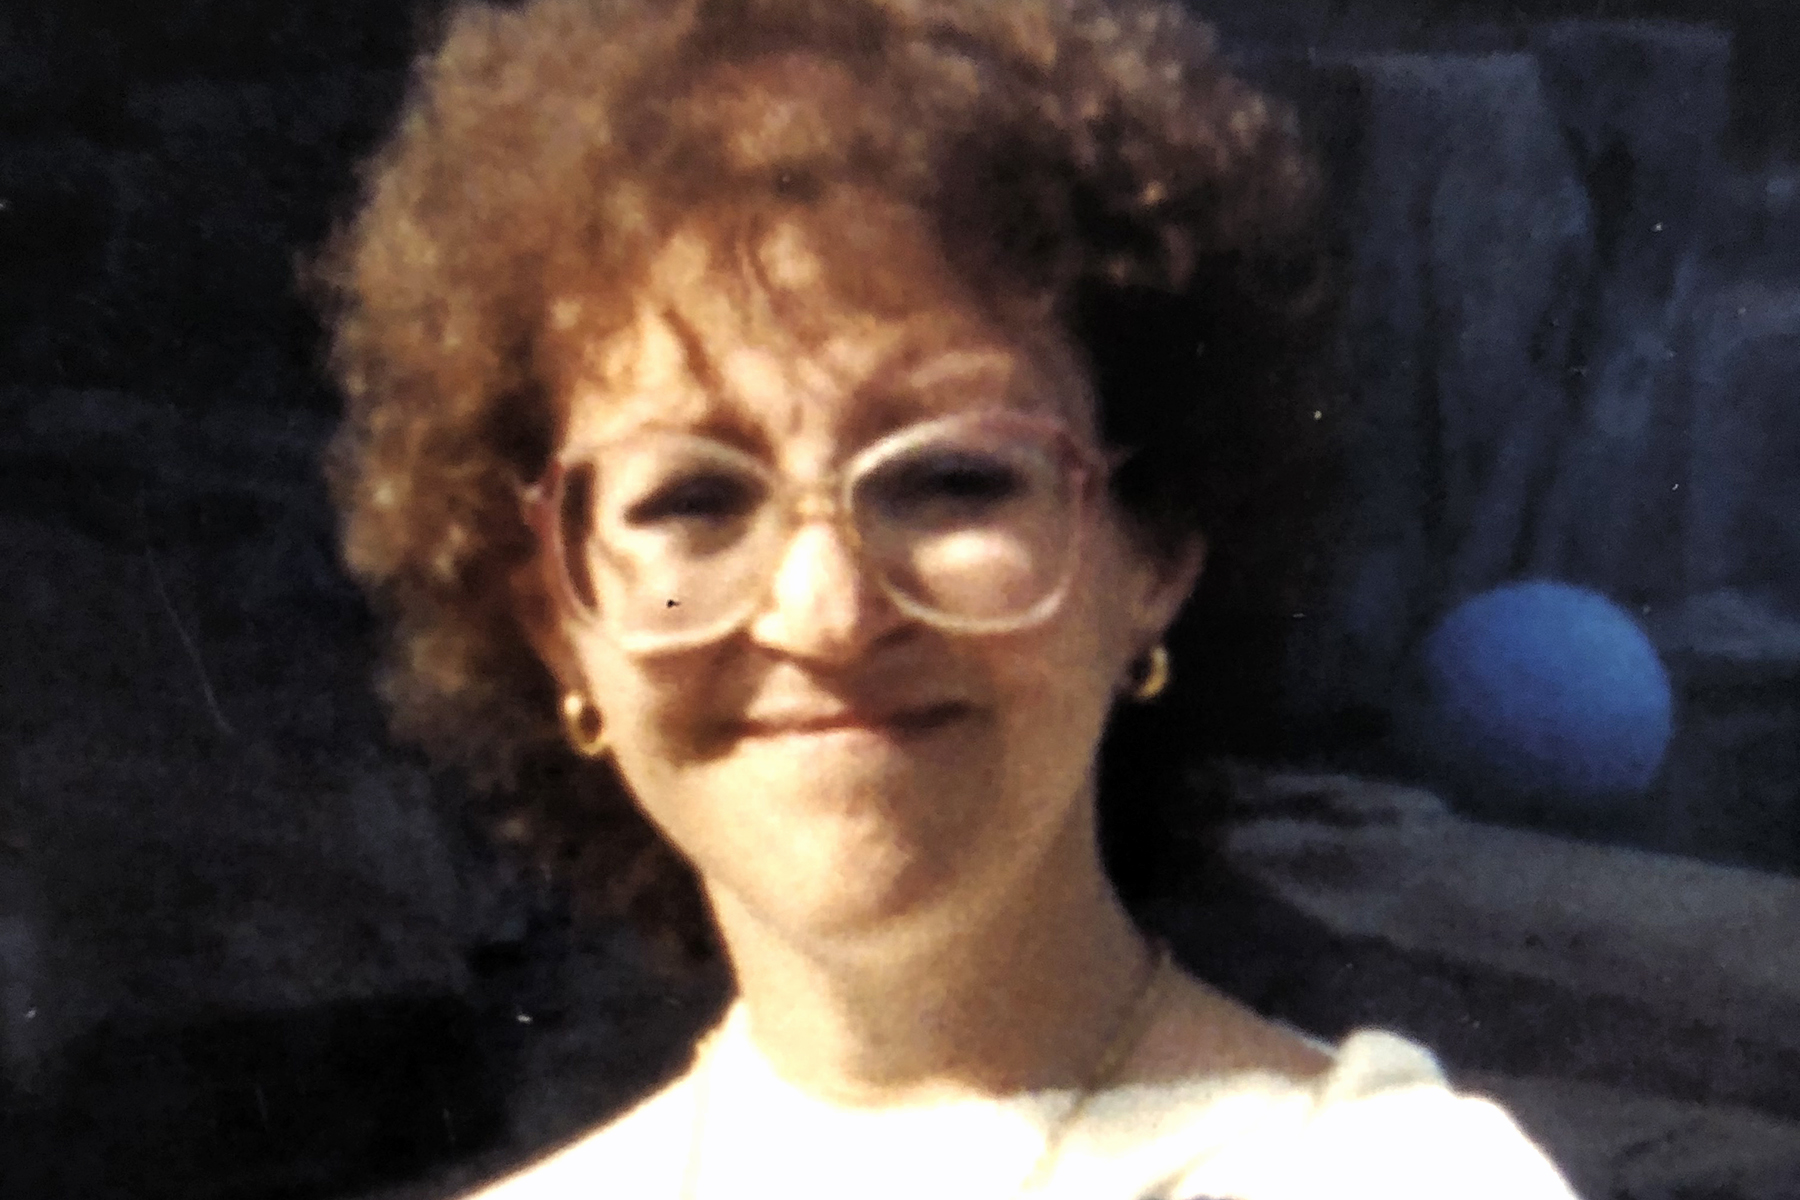 Niles police on Wednesday discussed some of the details that led to an arrest warrant earlier this month in 1992 strangulation of Helen K. Cardwell in Niles.